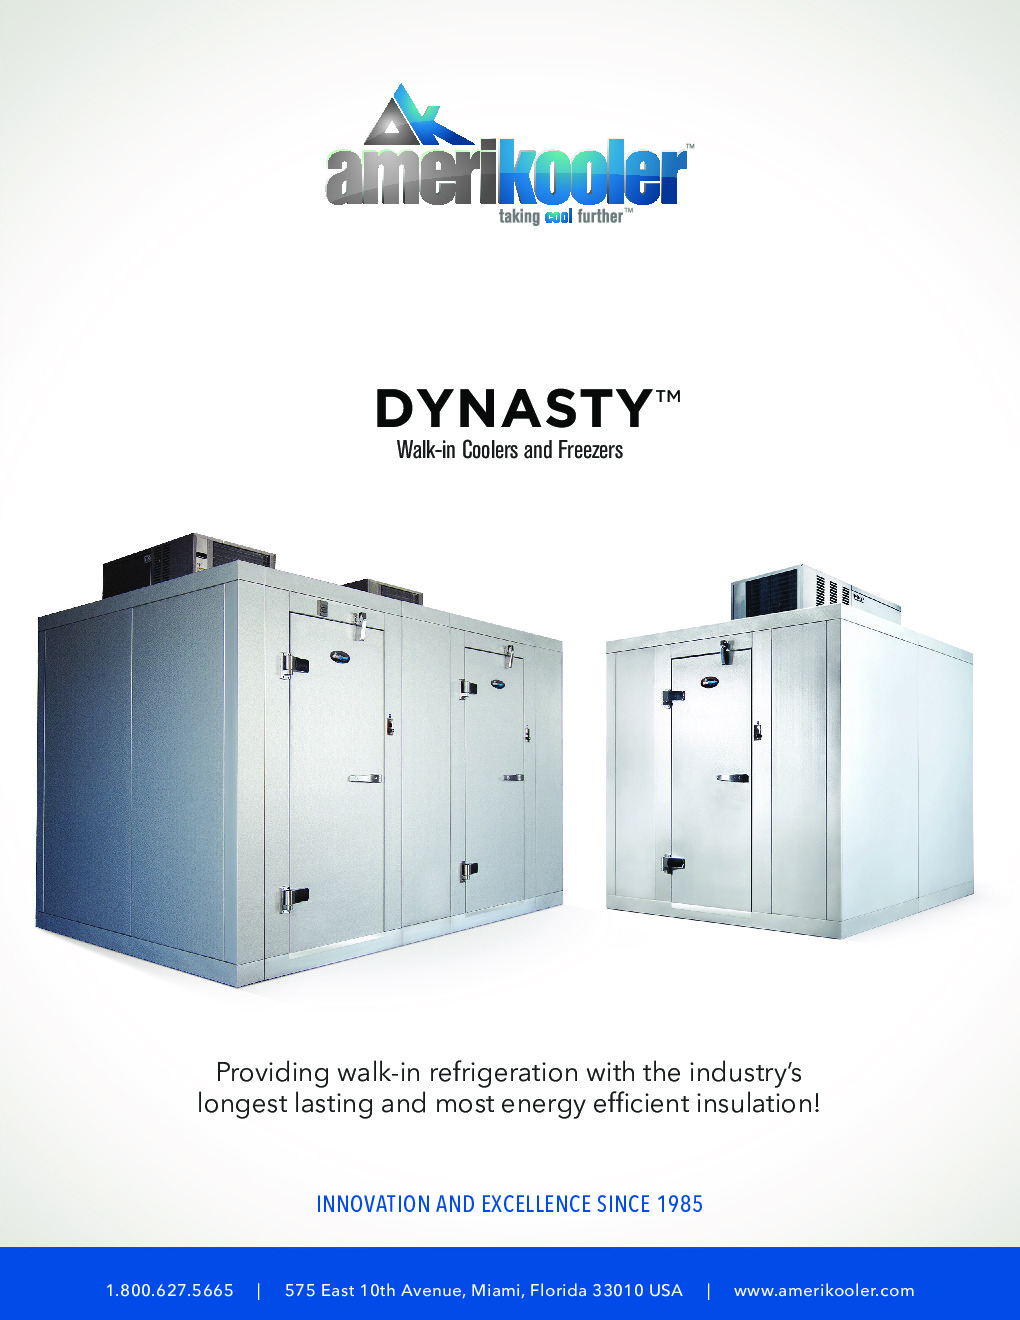 AmeriKooler DW081677N-6/10-RM 8' X 16' Walk-In Cooler, 10' L Cooler without Floor and 6' L Freezer, Remote